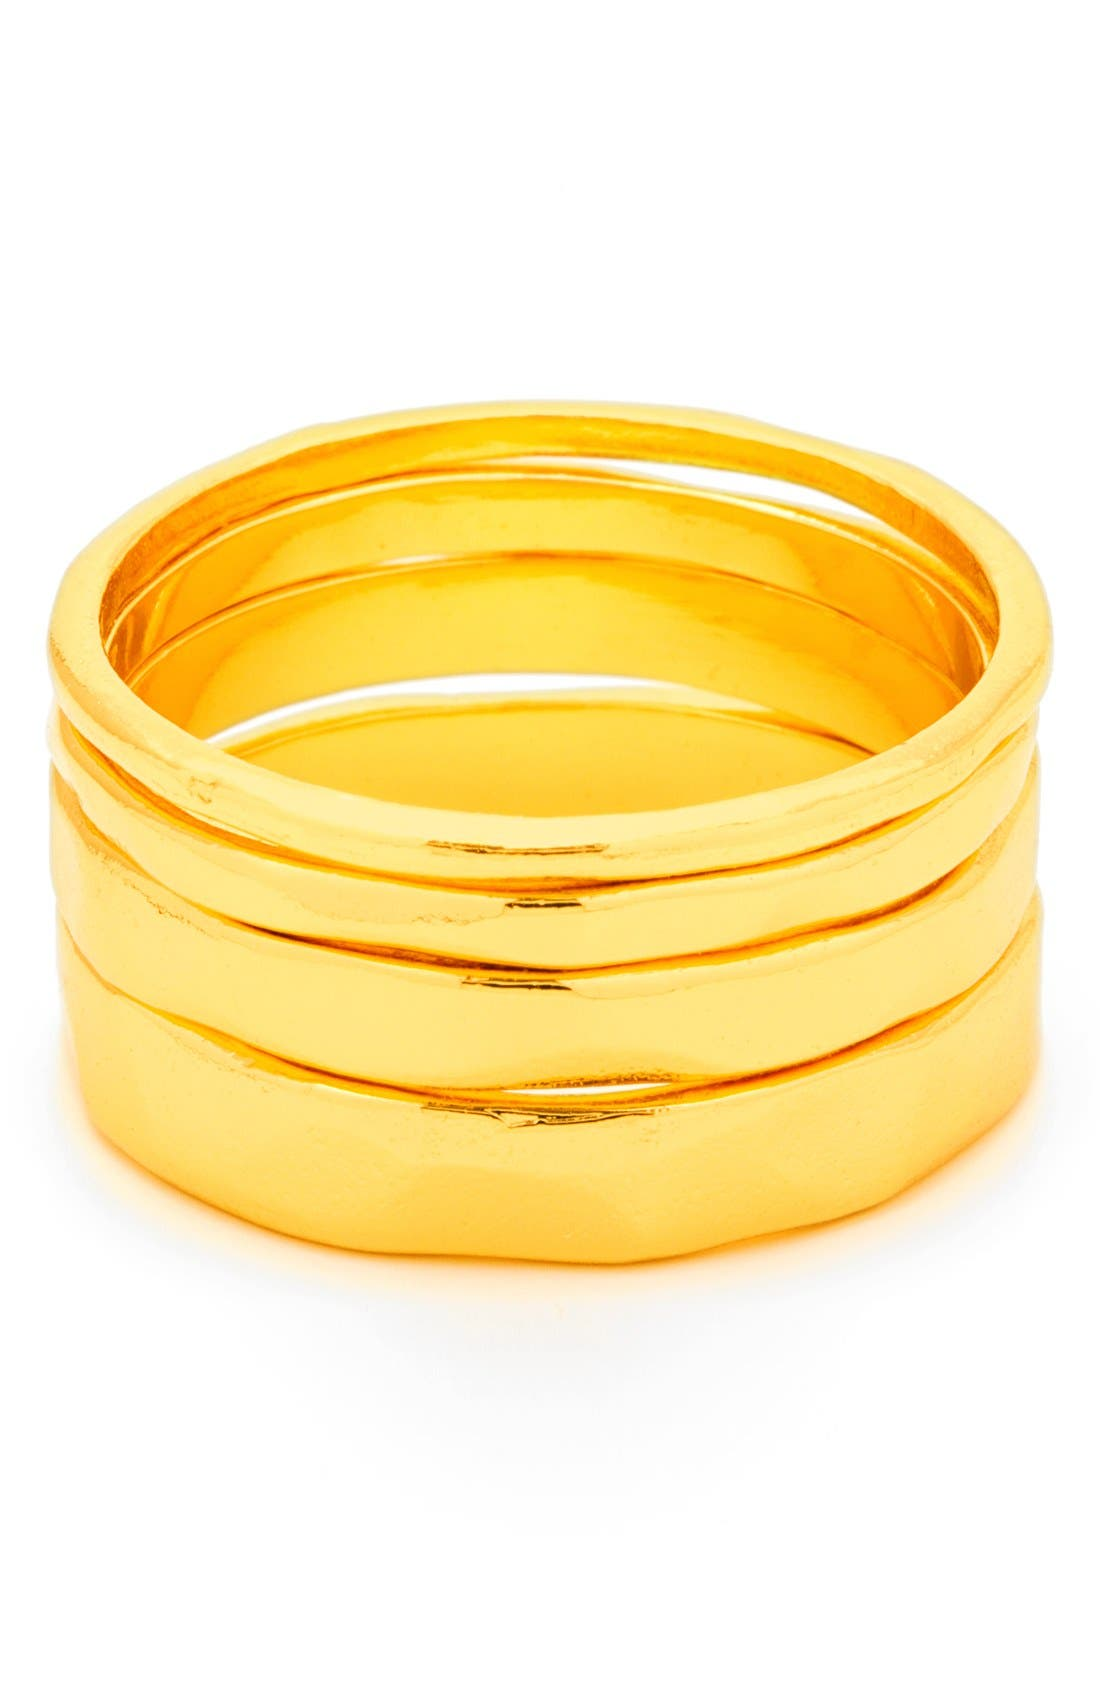 'G' Stacking Rings,                         Main,                         color, Gold